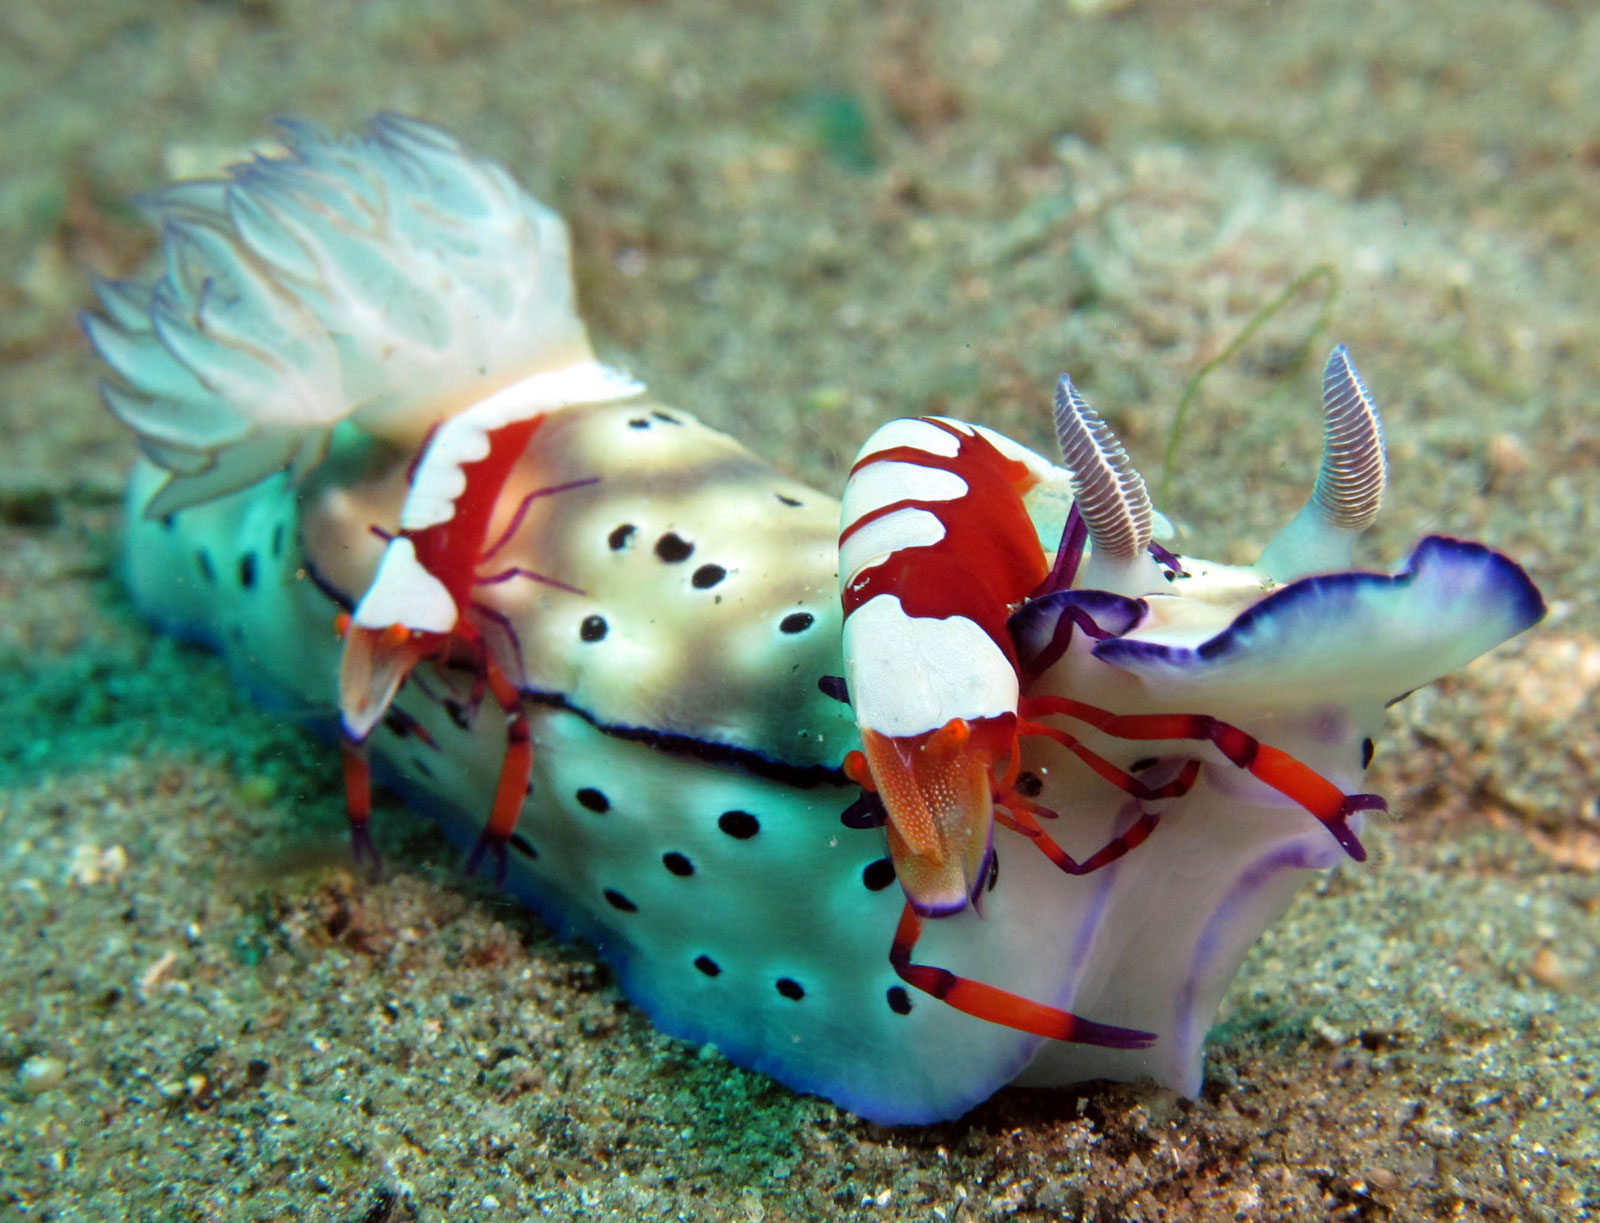 Risbecia tryoni with Emperor shrimp (Periclimenes imperator), photo: Alexandra horvarth (November 2014)